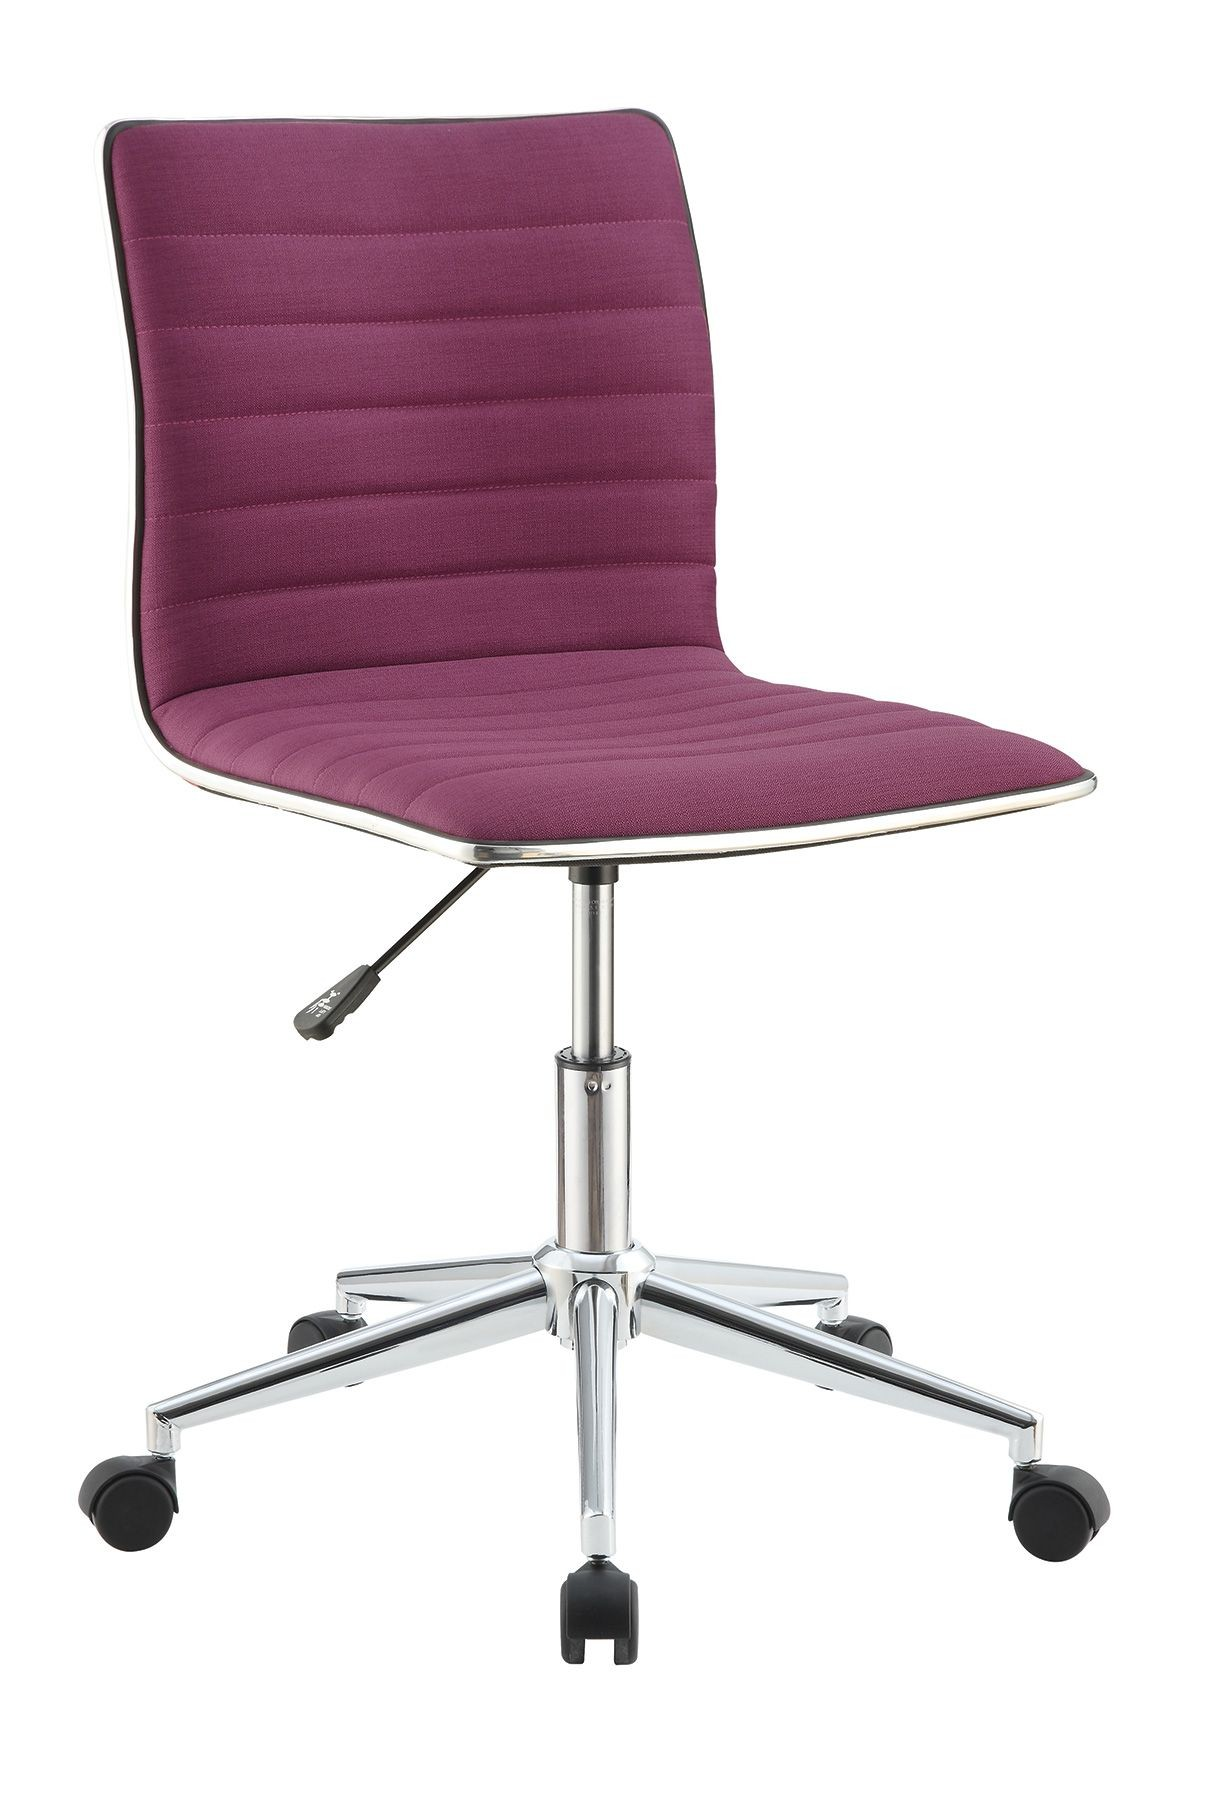 Purple fice Chair from Coaster